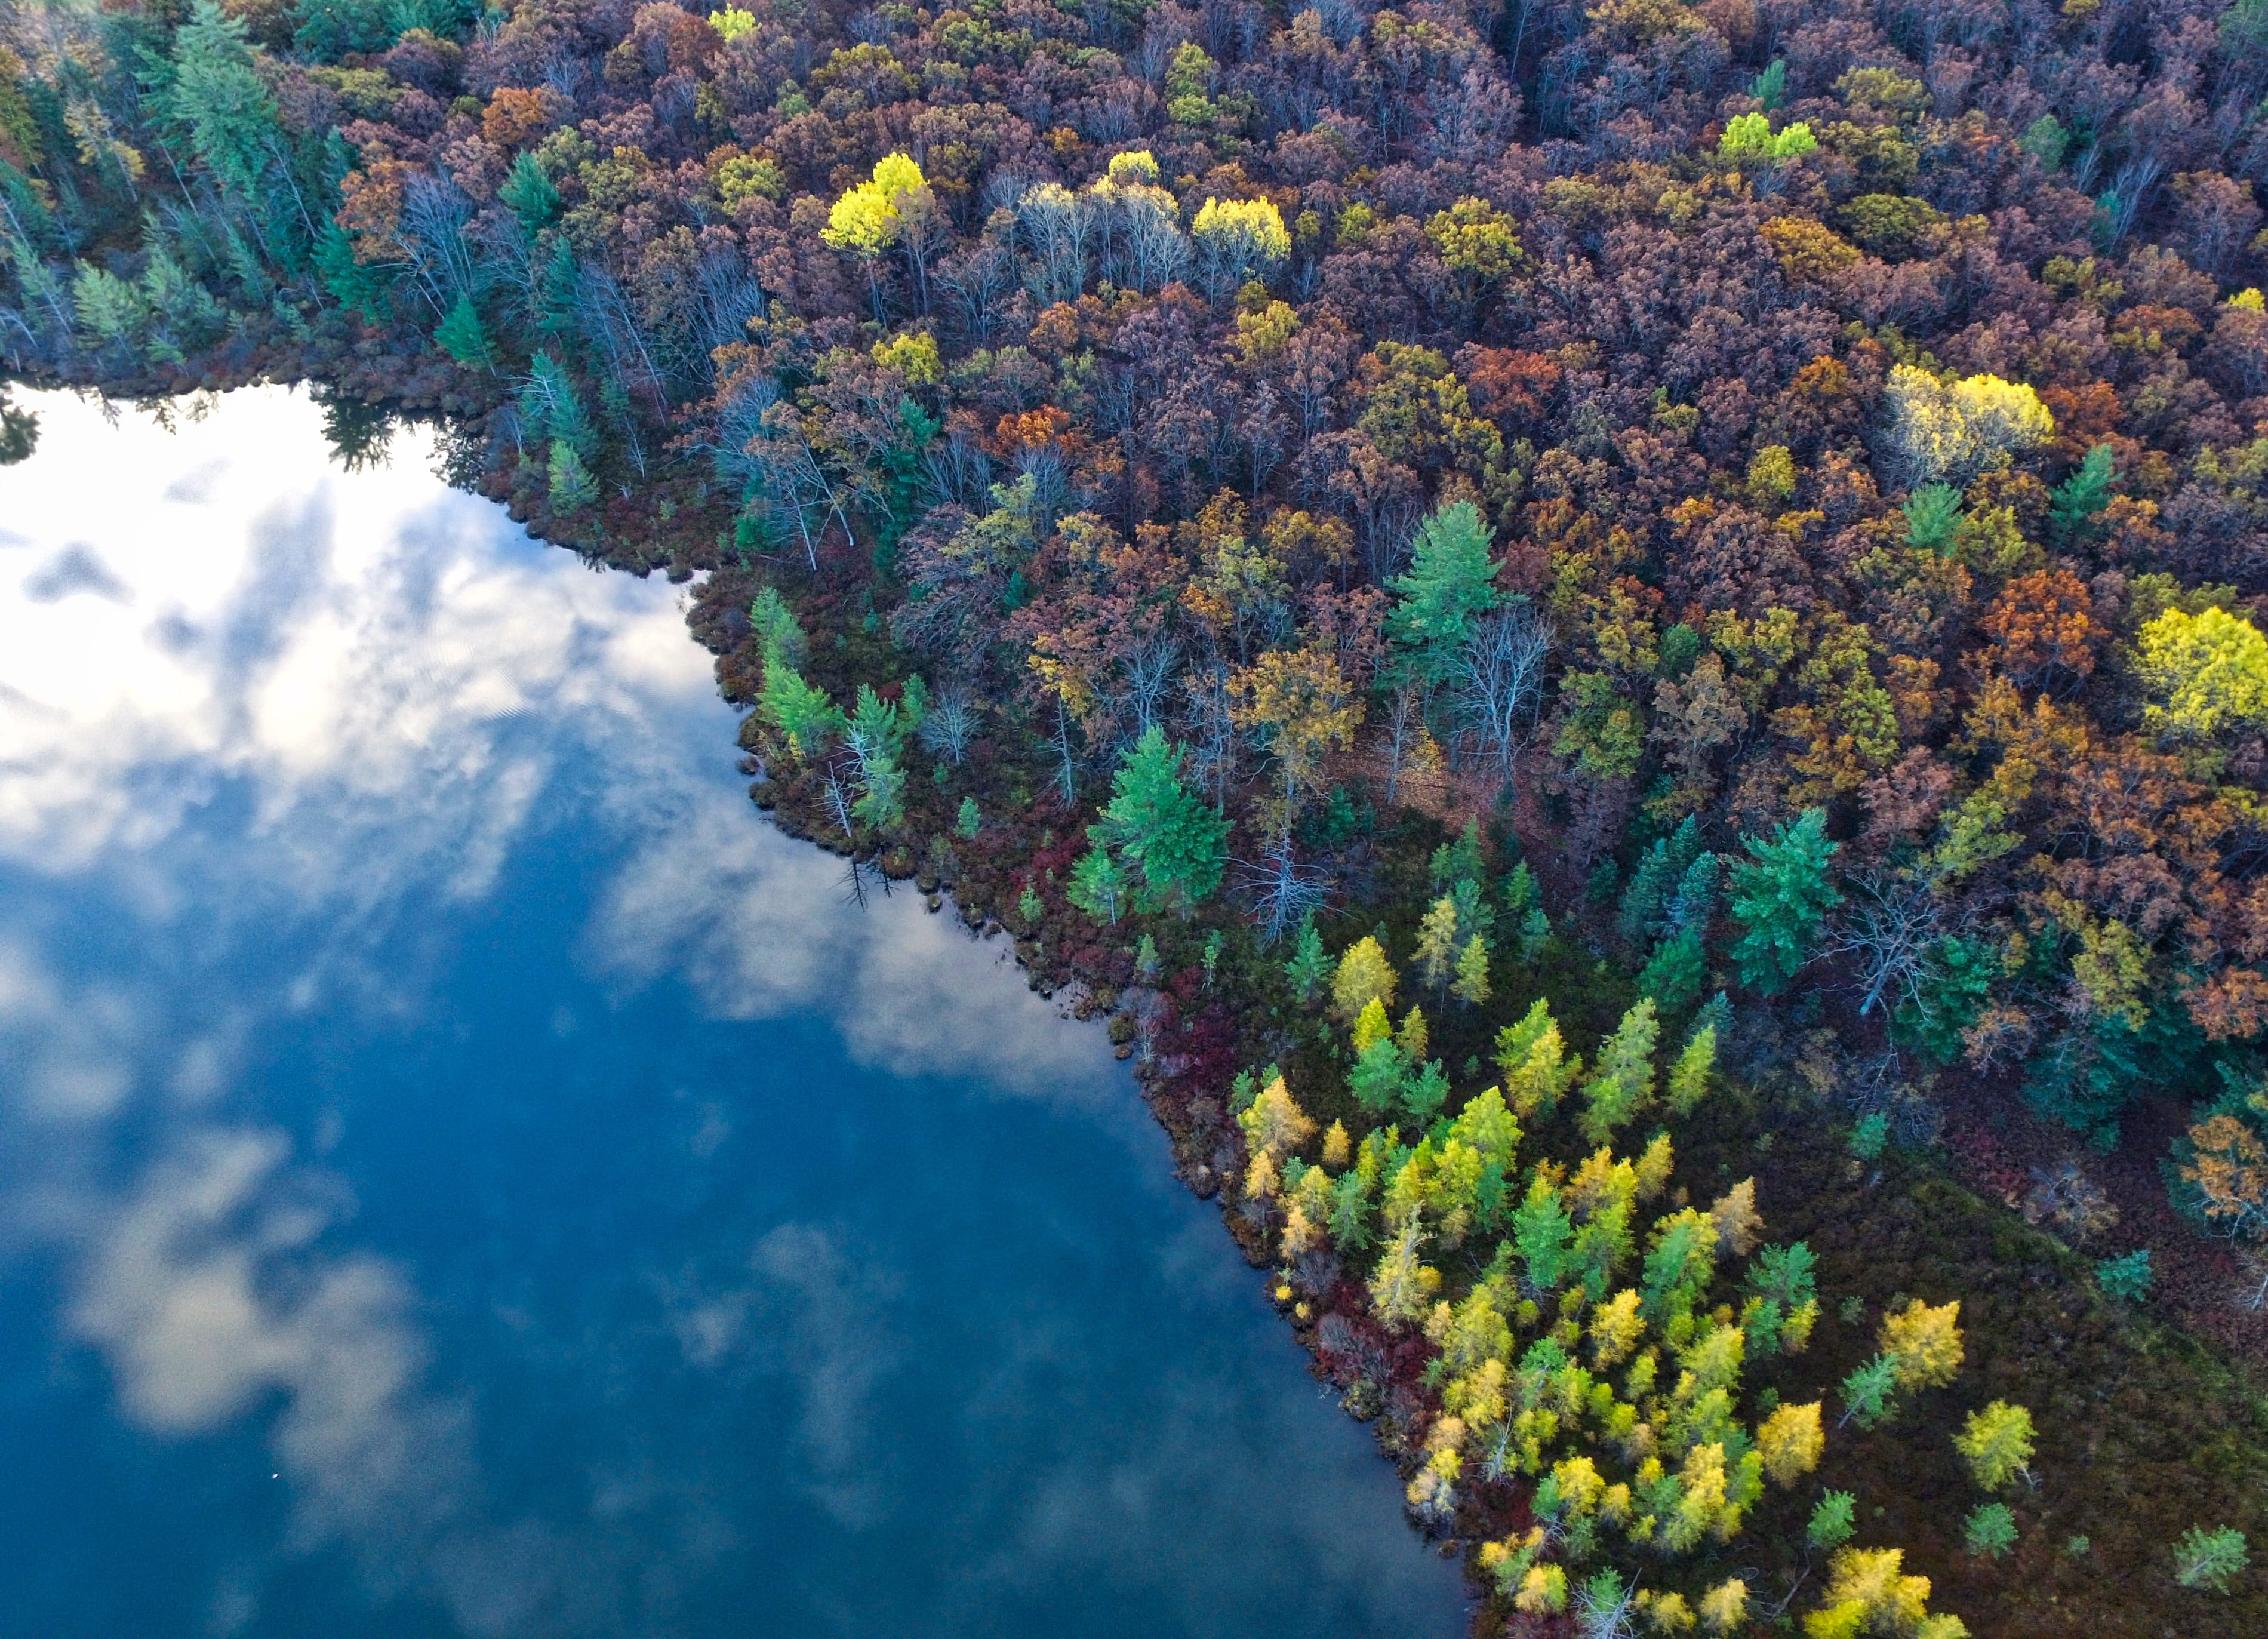 reflective lake and colorful trees